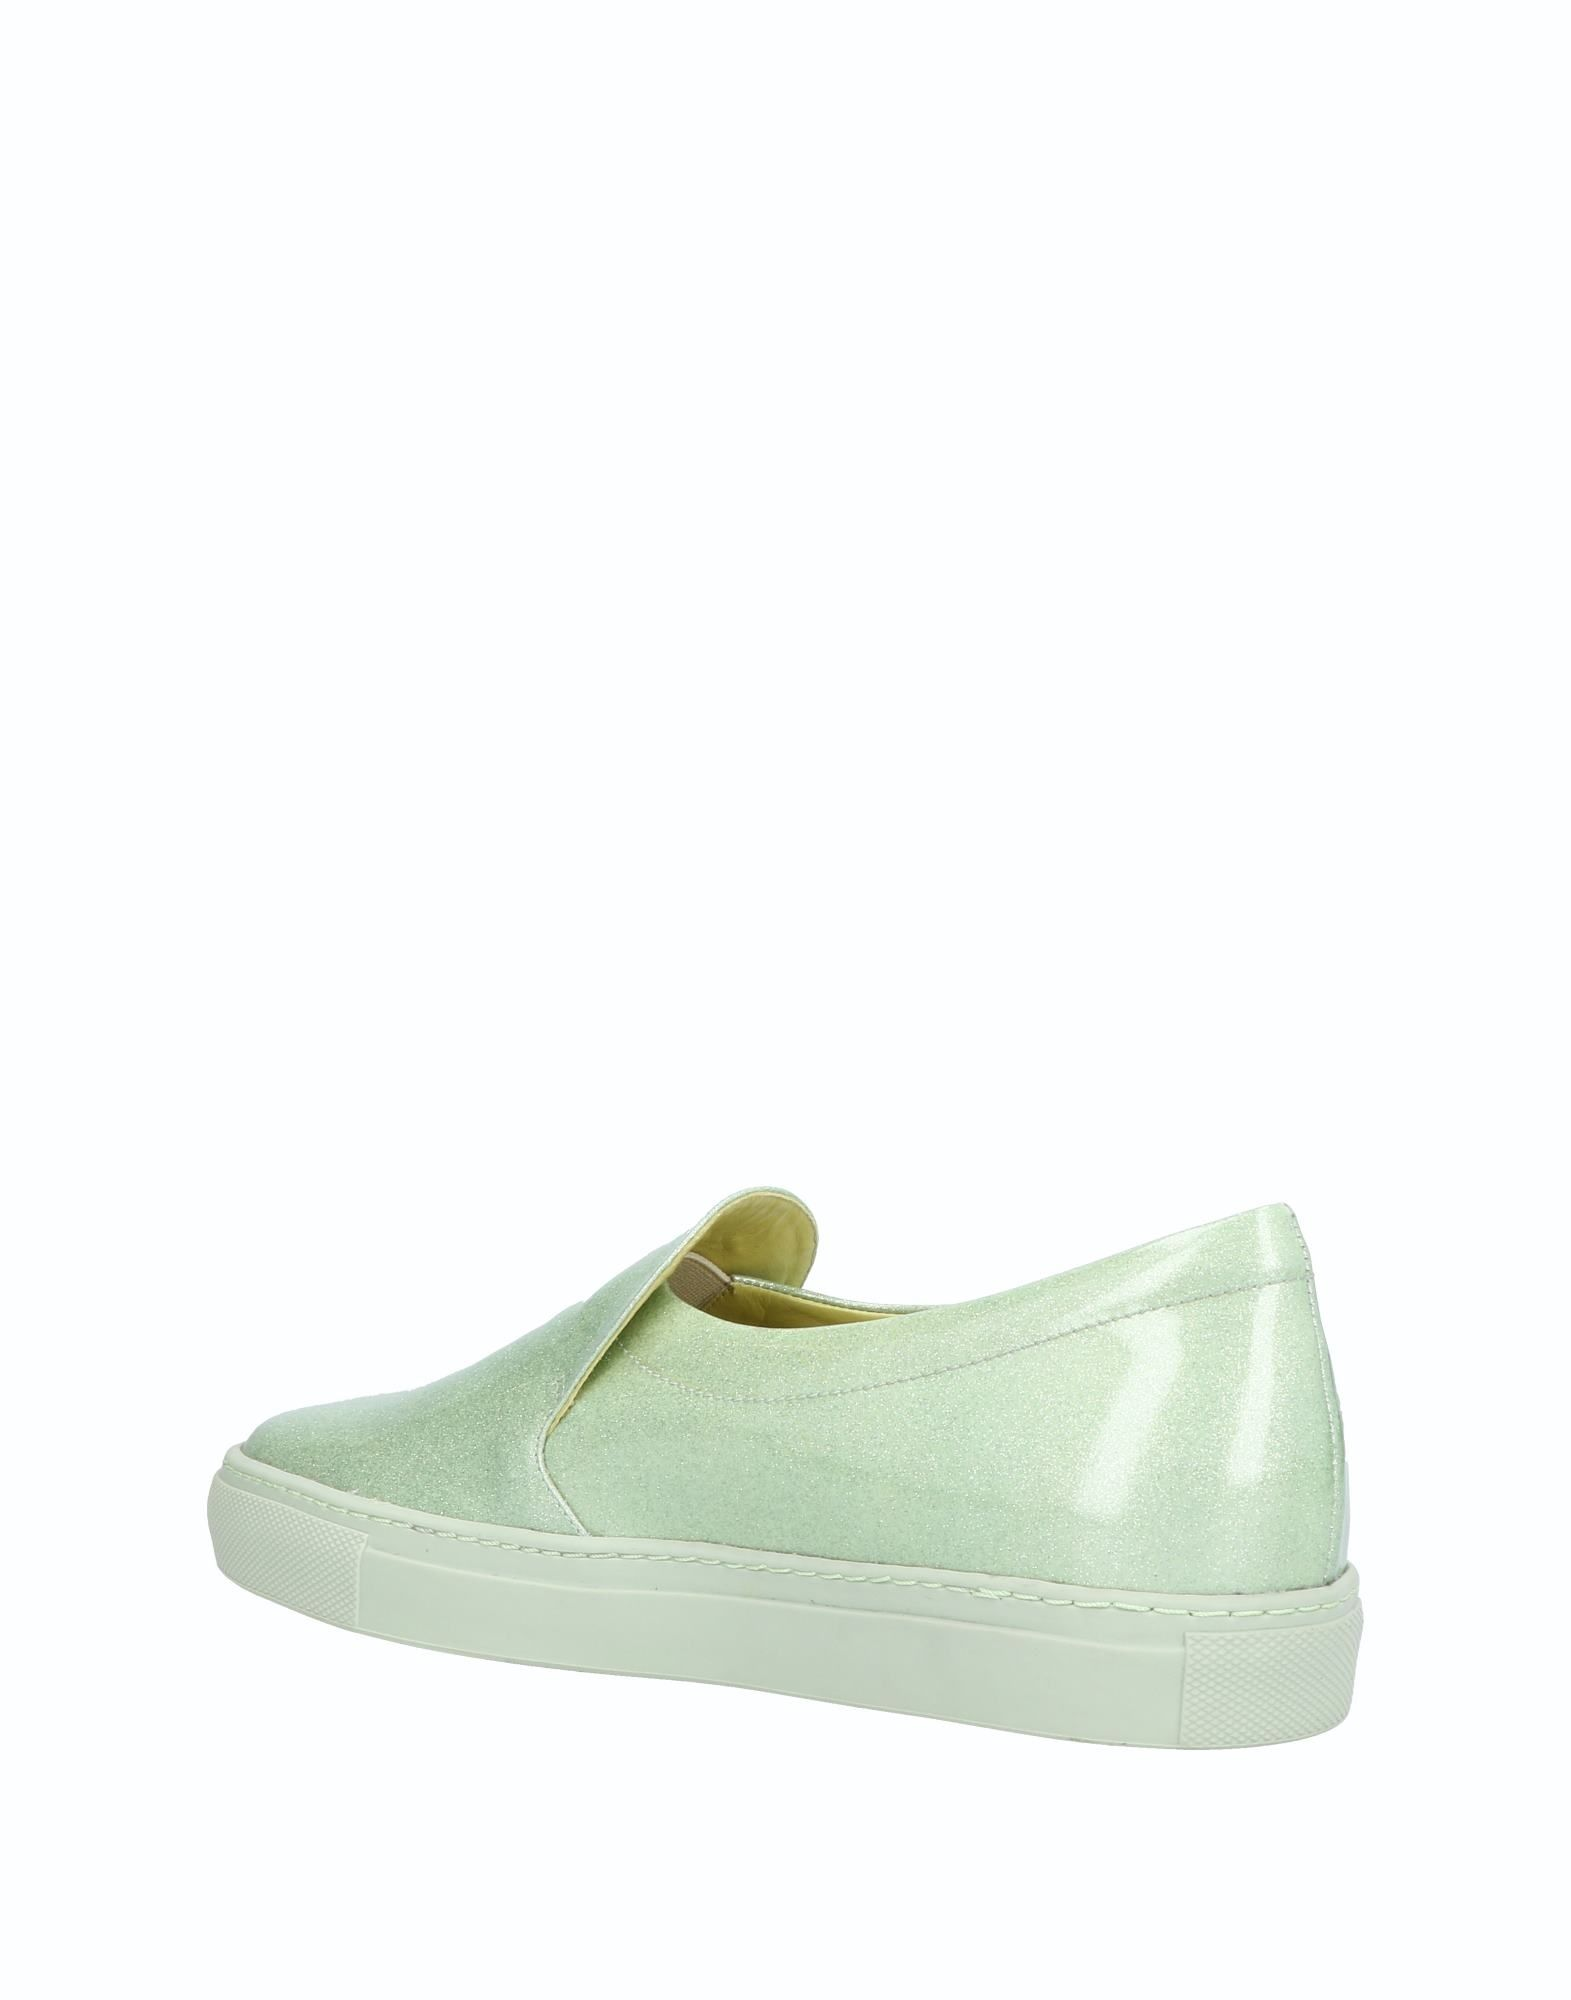 Rodo Sneakers - Women Rodo Sneakers online on  United United United Kingdom - 11465841DT 4ca49a